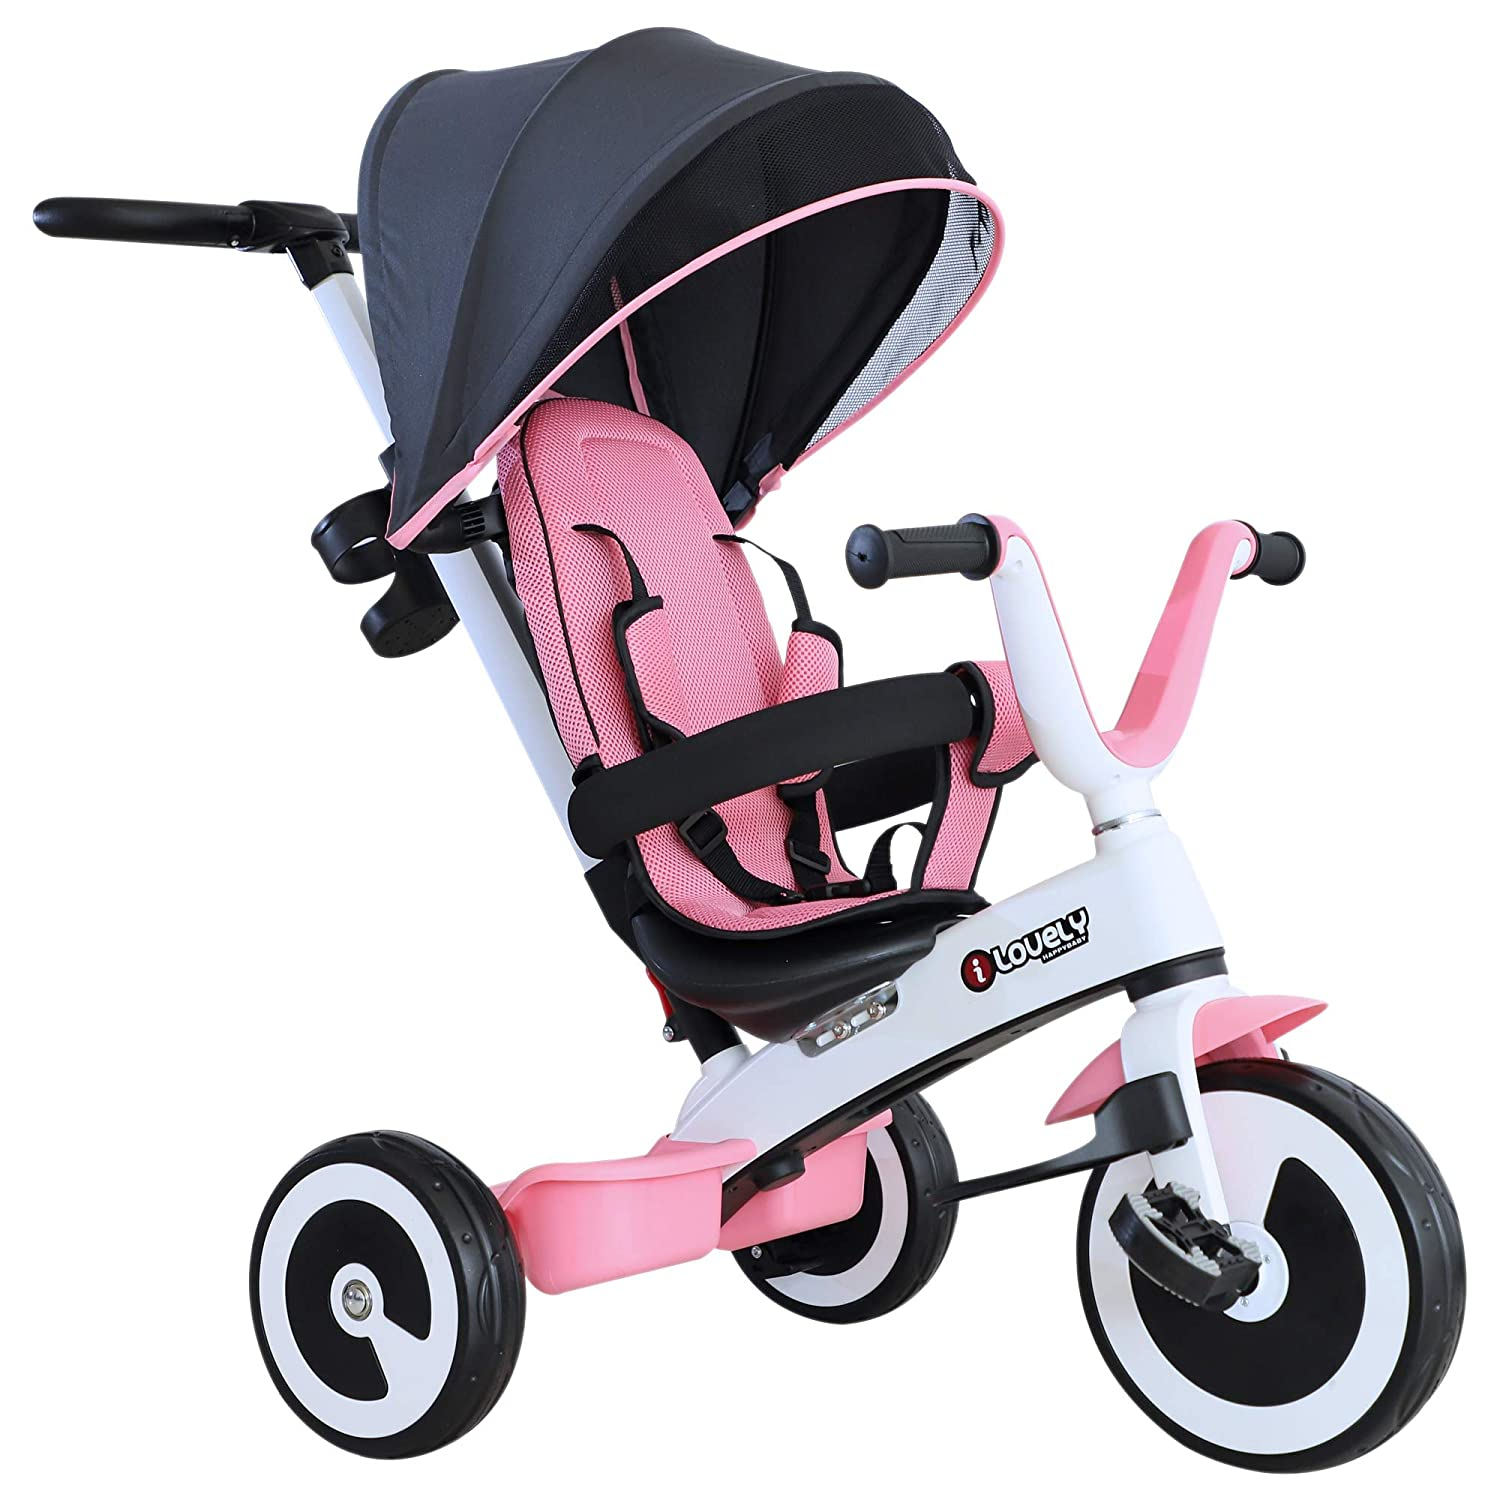 HOMCOM Baby Tricycle Children's 4 In 1 Trikes Kids Stroller W/ Canopy 3 Wheels Safety Guard Ride On Dark Grey Sold by MHSTAR UK370-062CG0331